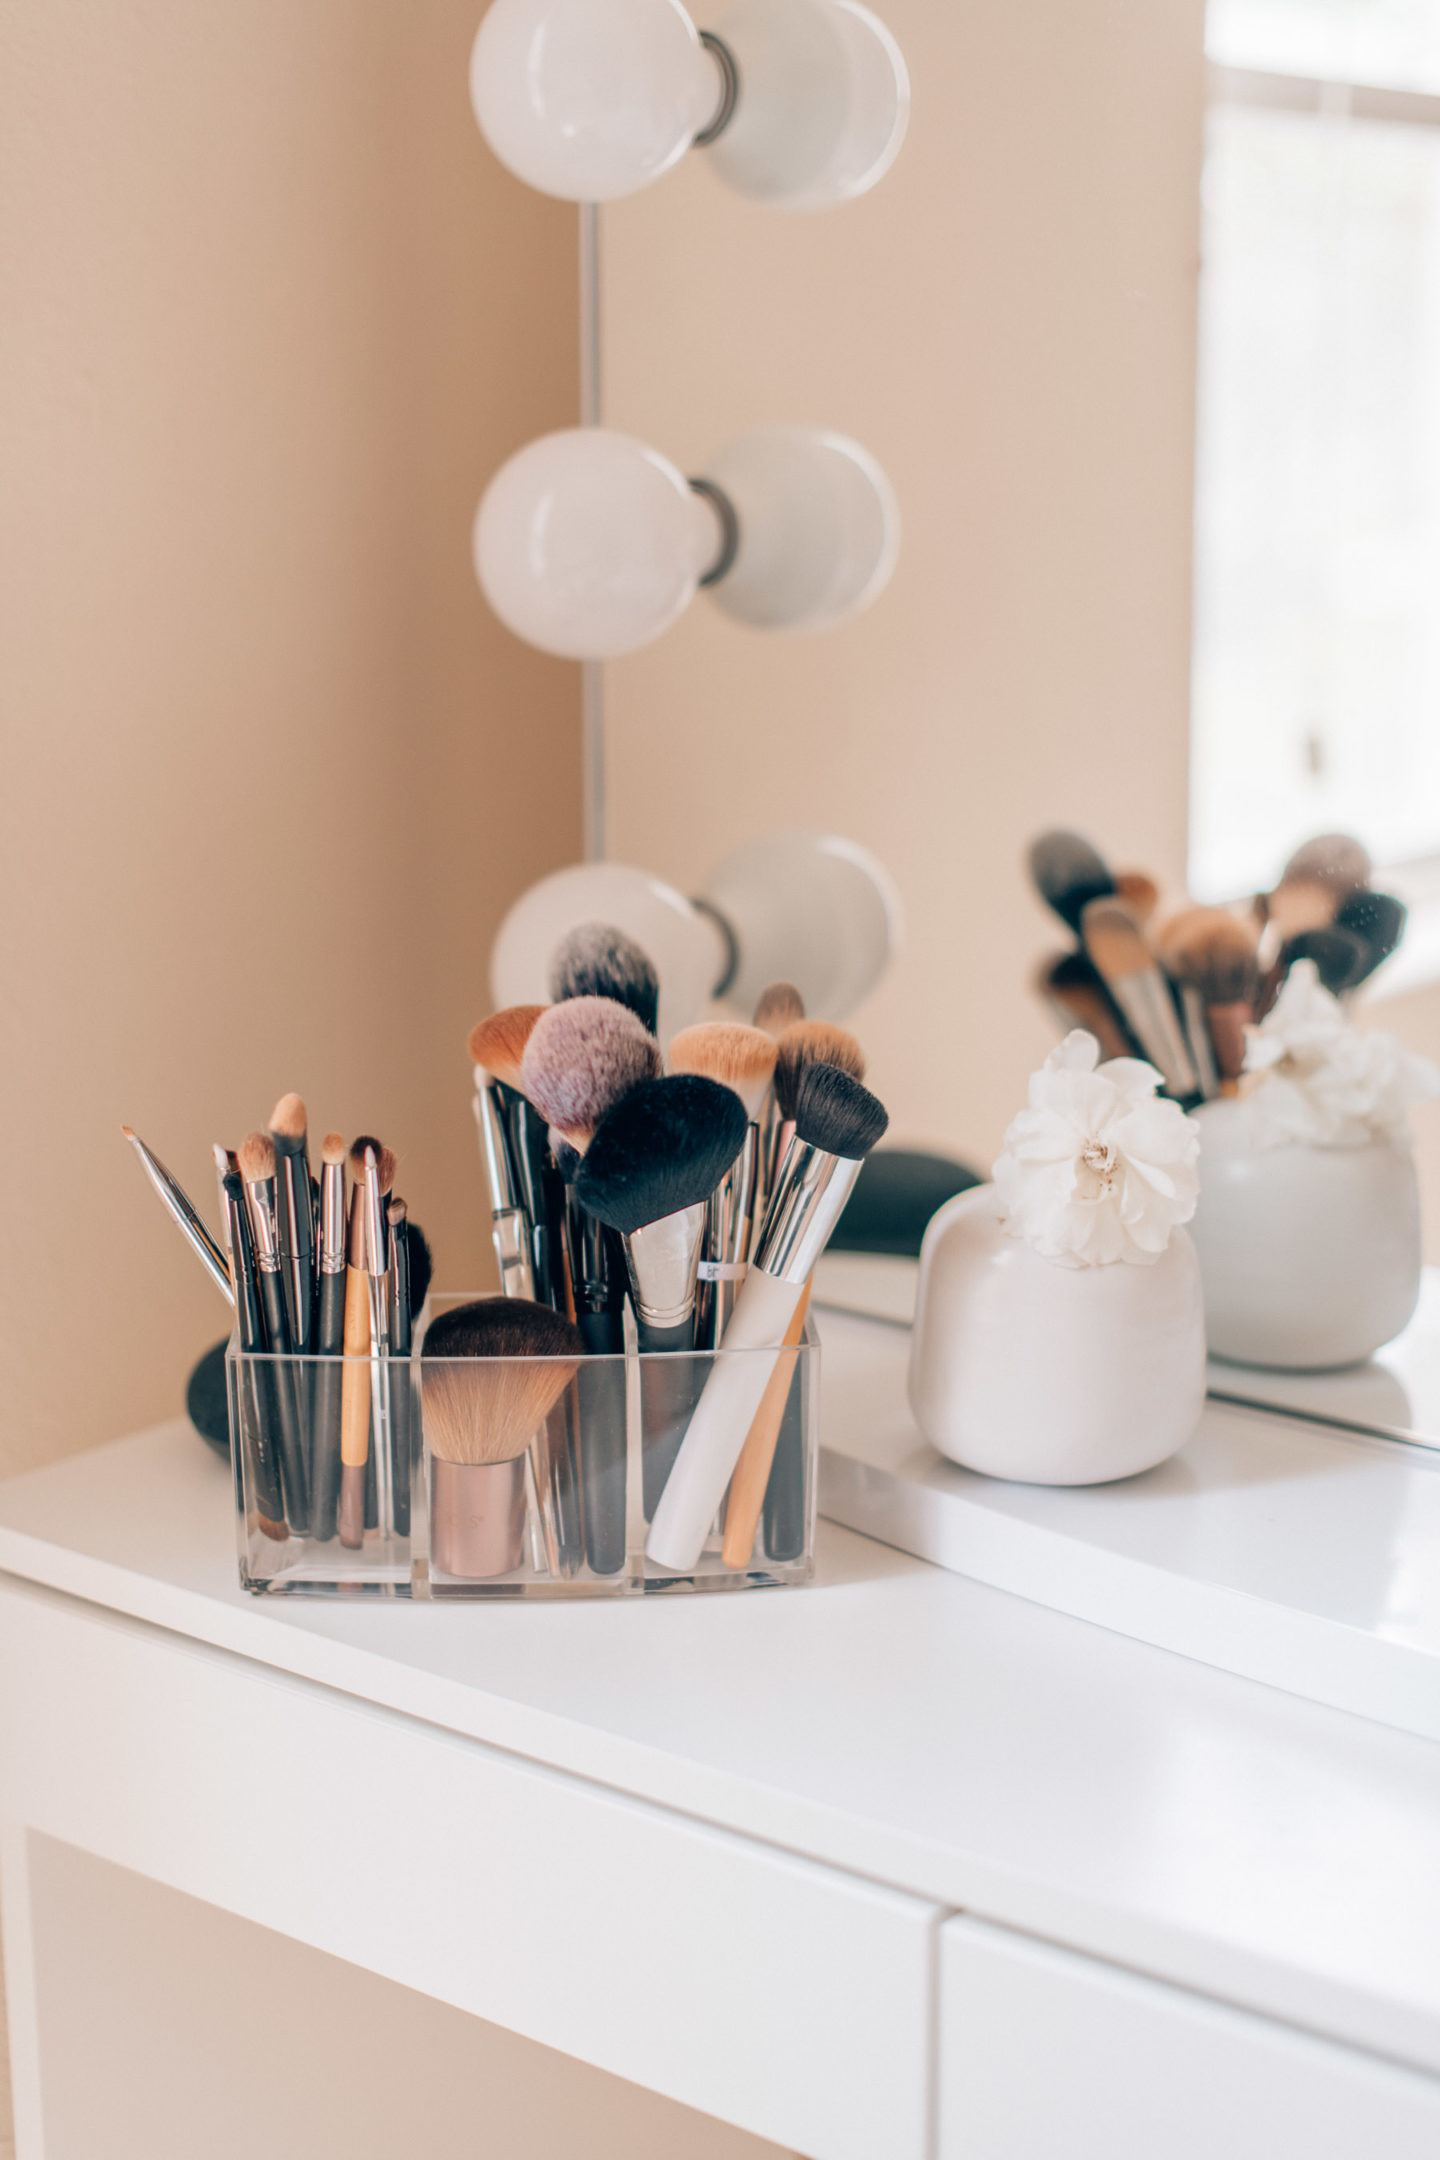 Makeup vanity organization ideas, by lifestyle blogger What The Fab